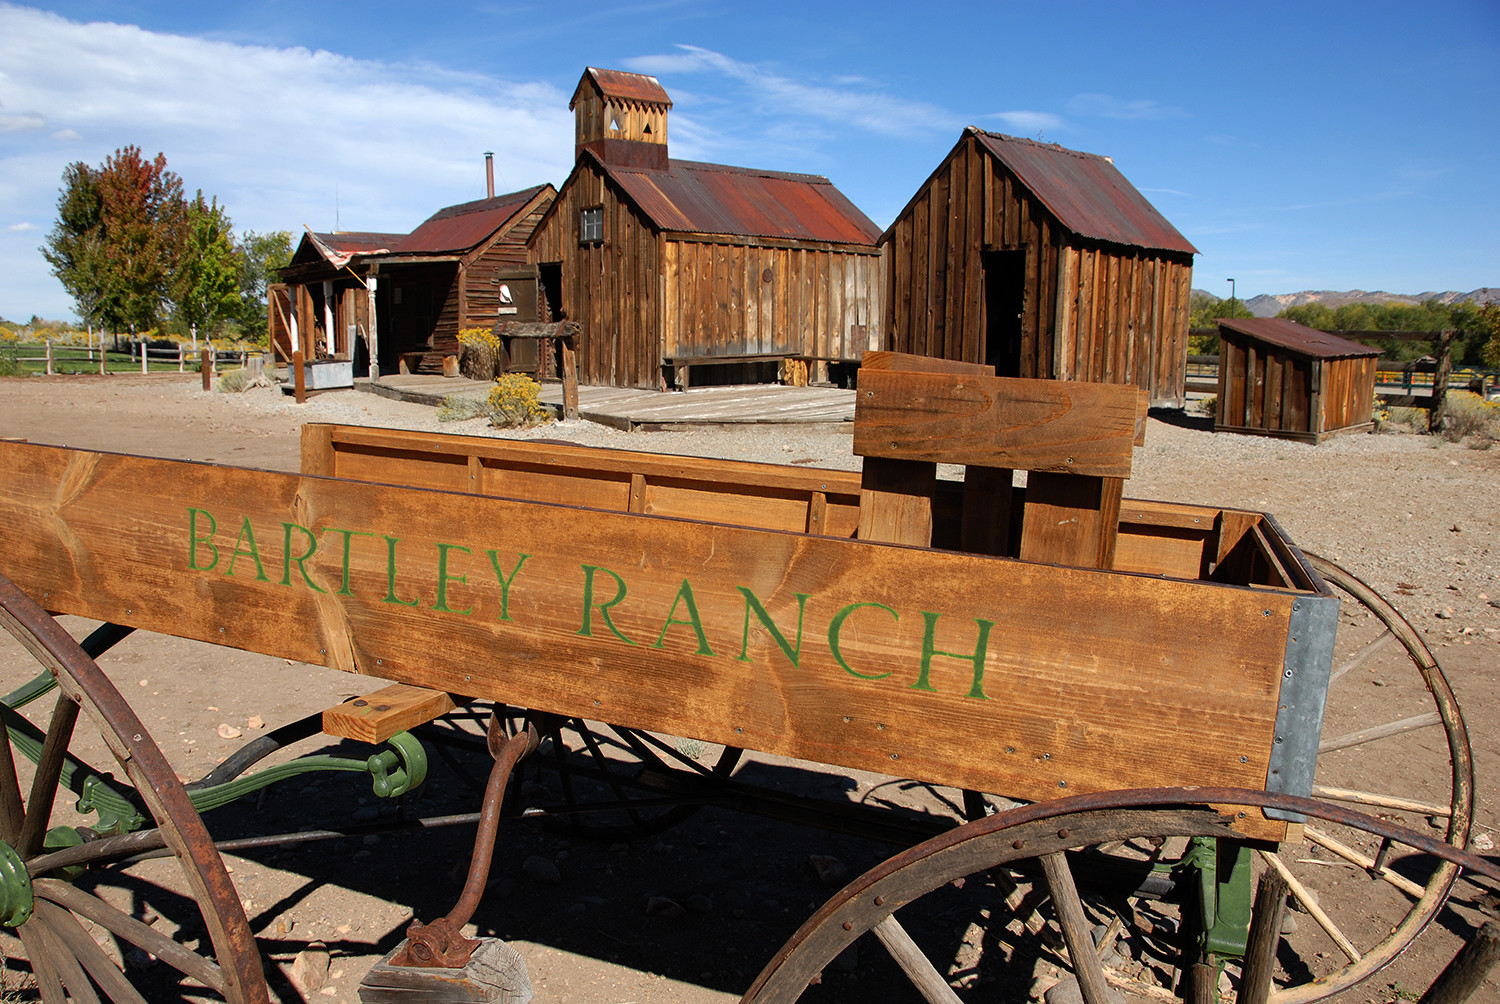 Truckee Meadows Remembered at Bartley Ranch by Jack